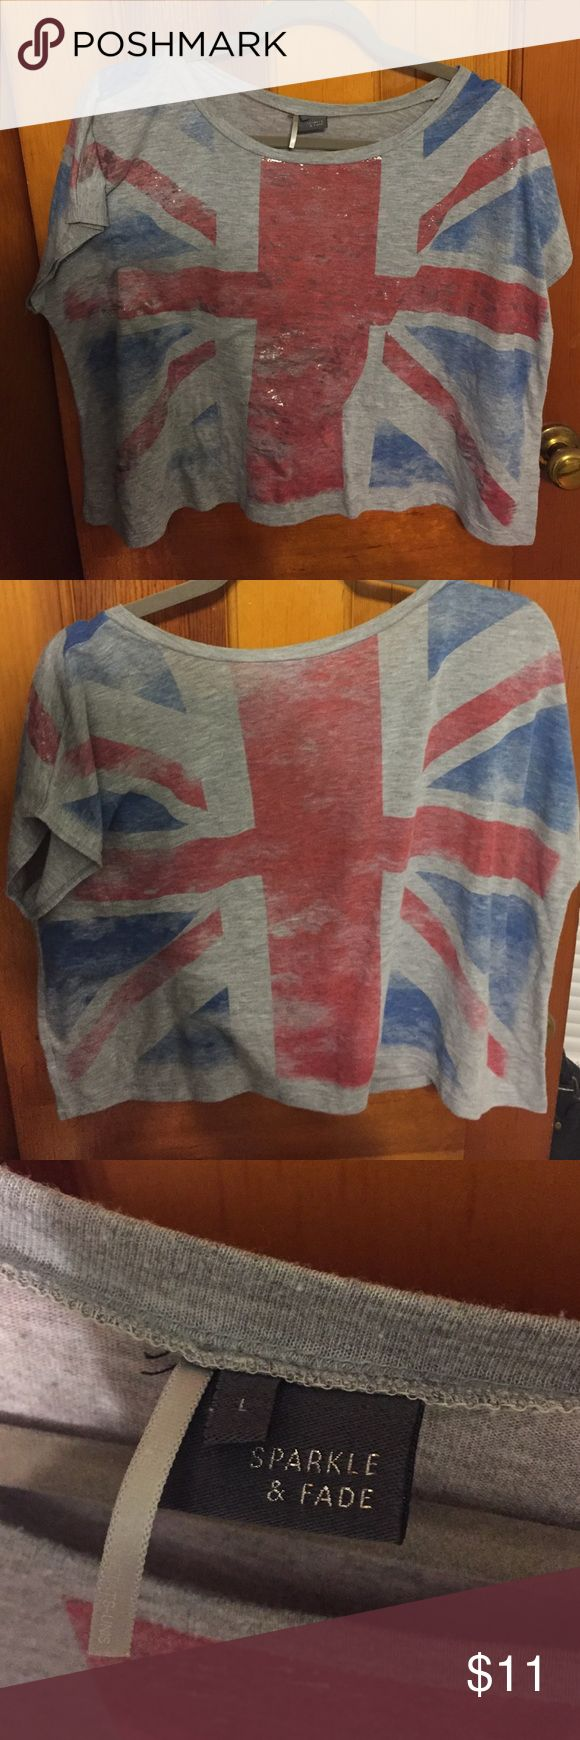 London flag flowy semi crop top Large flowy top. Sparkle and fade brand from urban outfitters. Urban Outfitters Tops Crop Tops